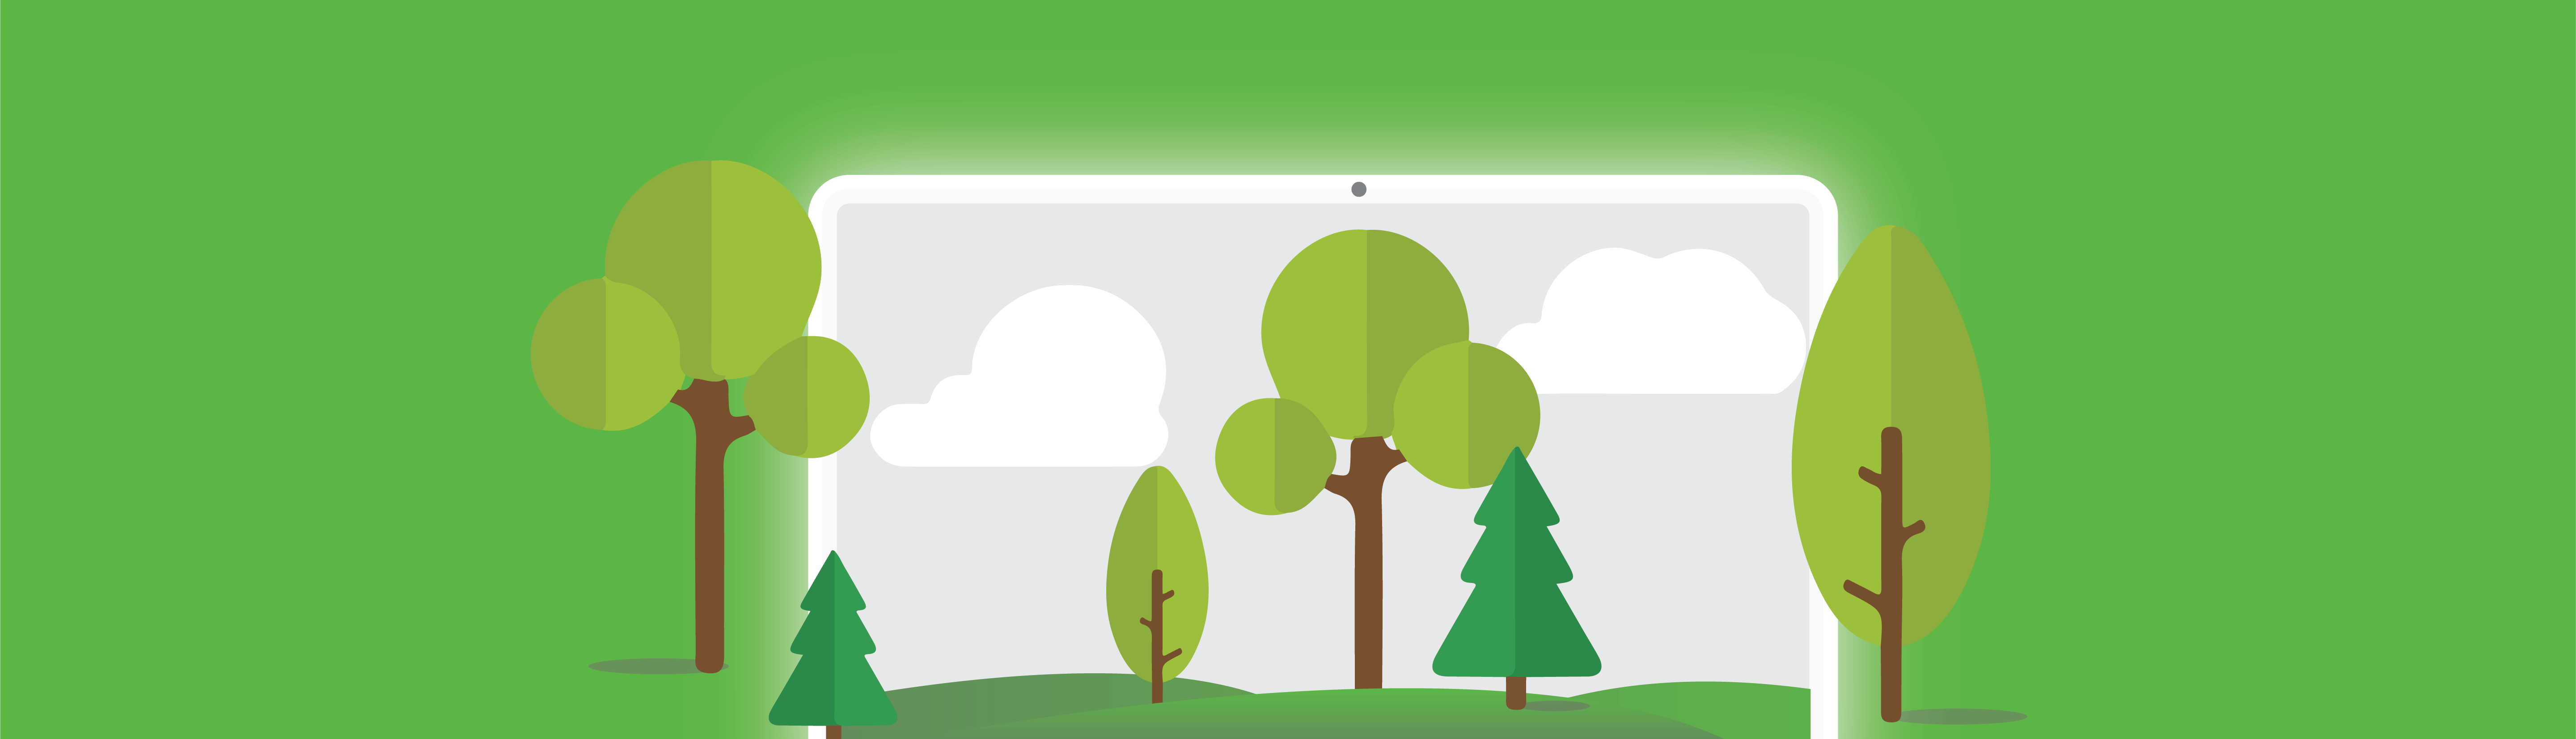 graphic of computer screen surrounded by trees